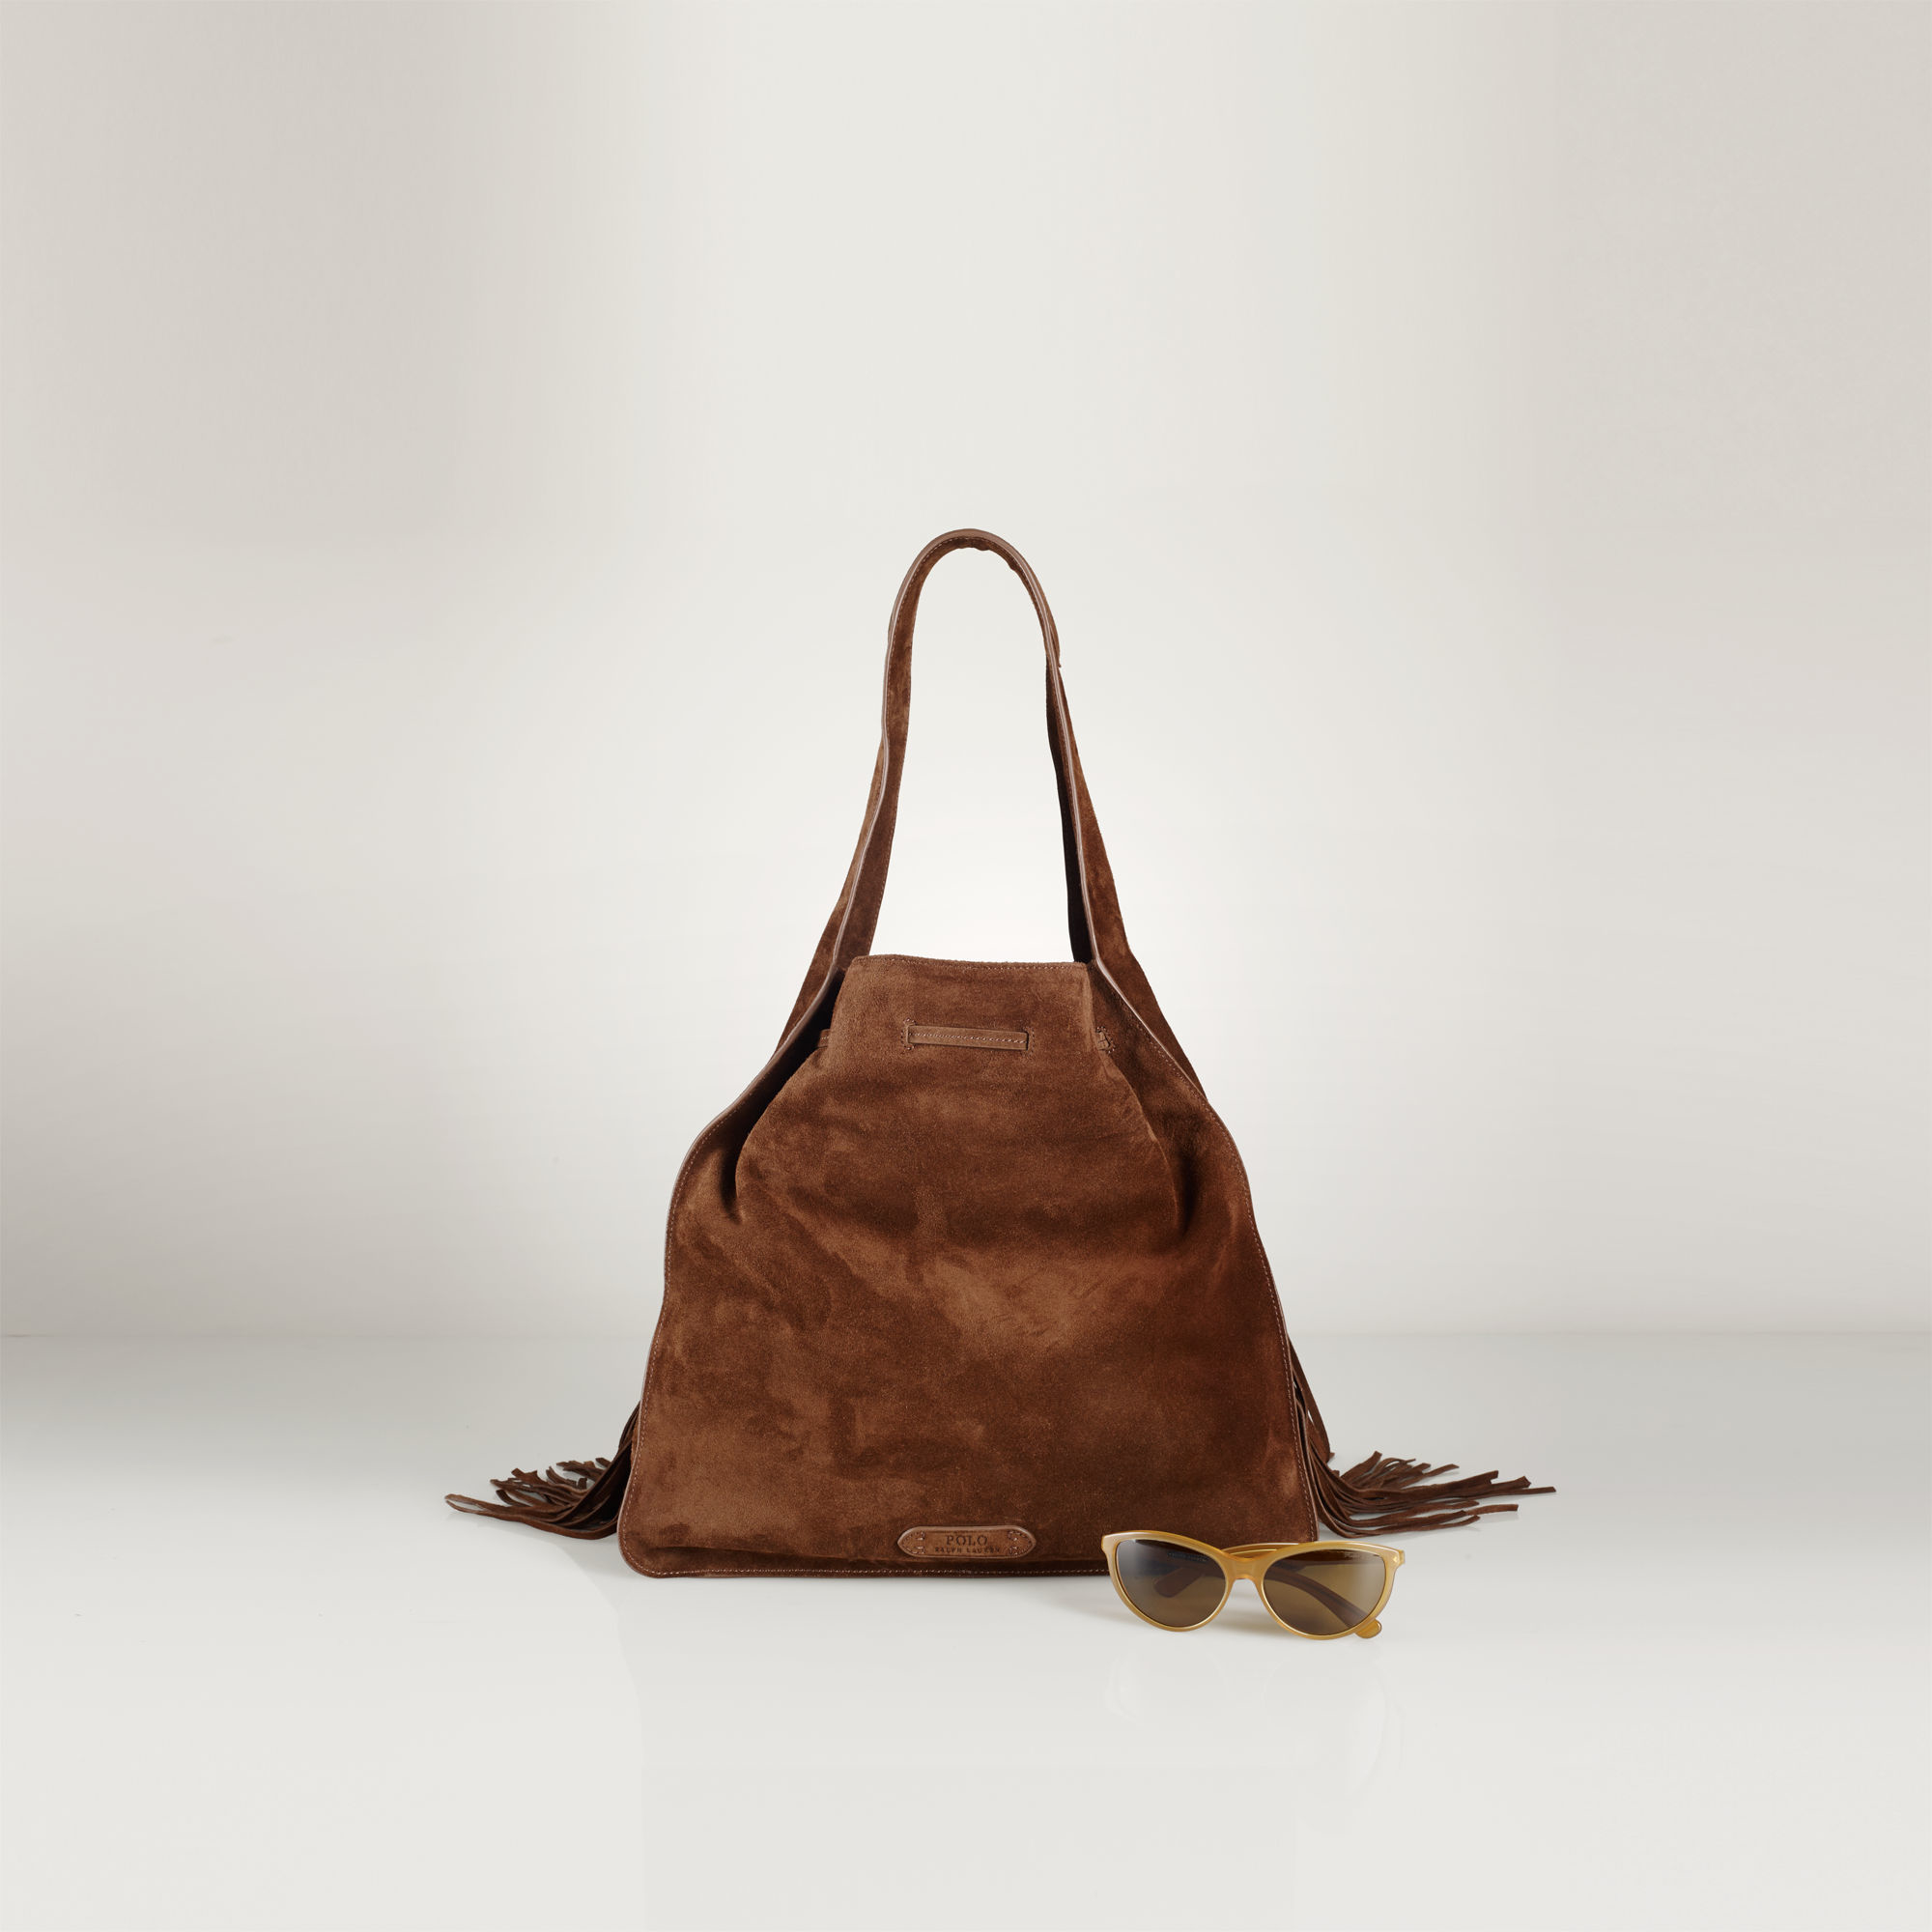 Polo Ralph Lauren Fringed Suede Sling Bag in Brown - Lyst 8f86d758cc5f1